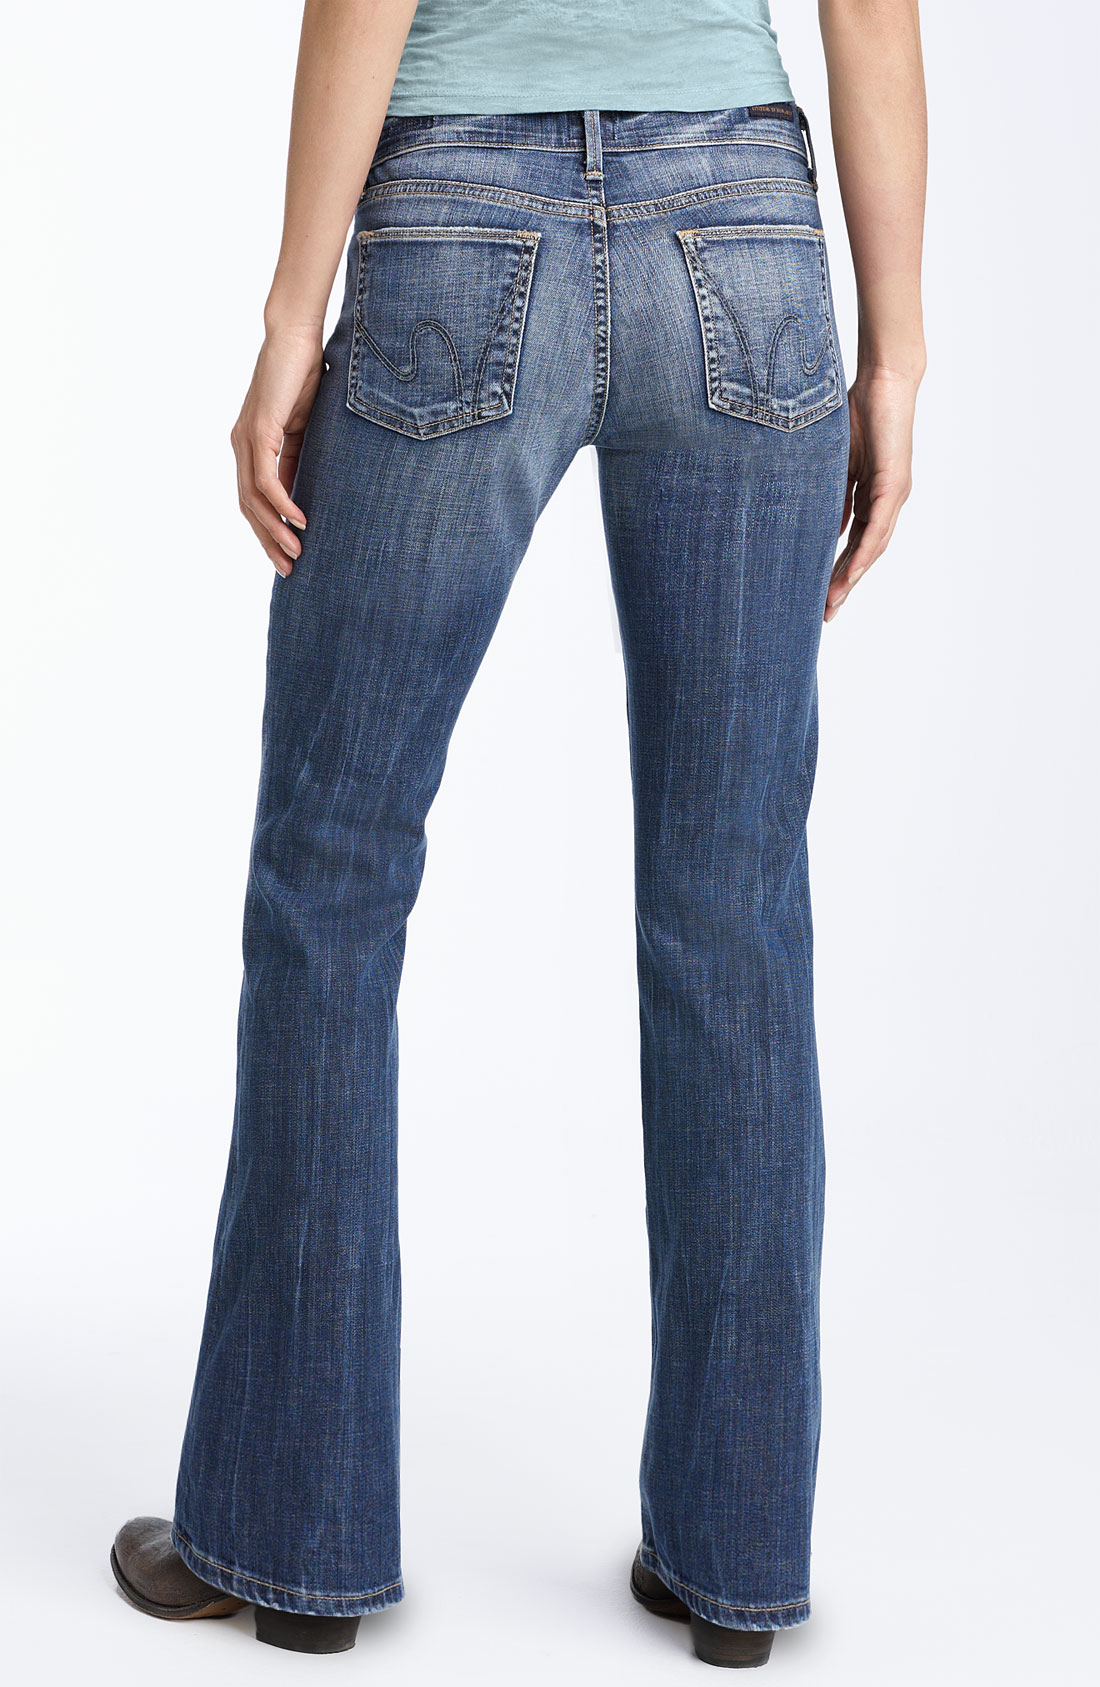 citizens of humanity dita bootcut stretch jeans wonder wash petite in blue wonder lyst. Black Bedroom Furniture Sets. Home Design Ideas